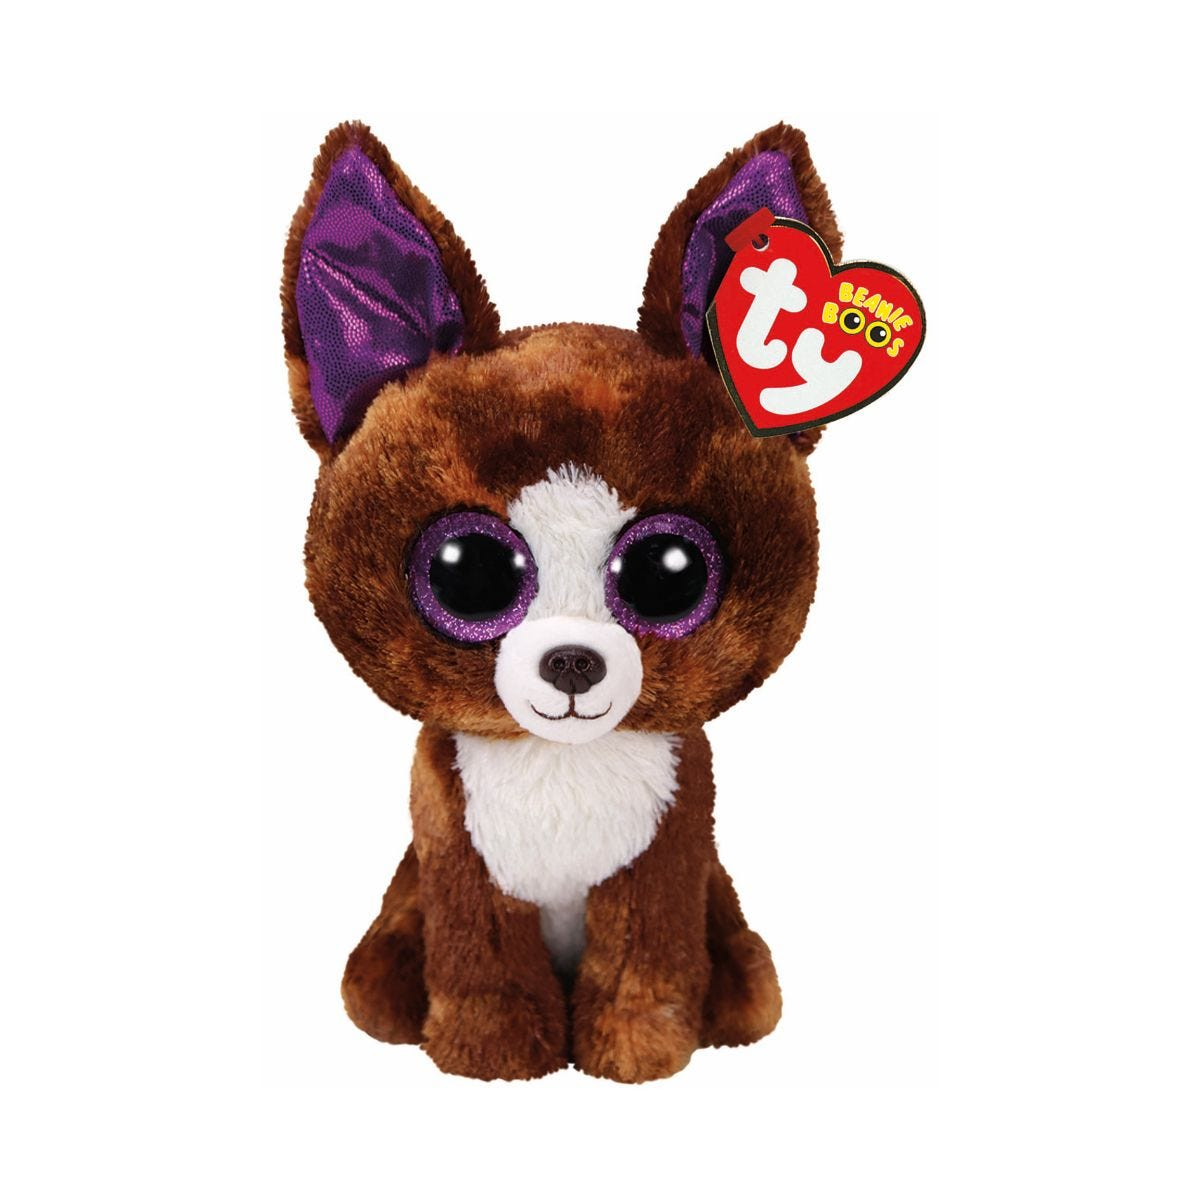 Image of Ty Dexter Chihuahua Beanie Boo Cuddly Toy